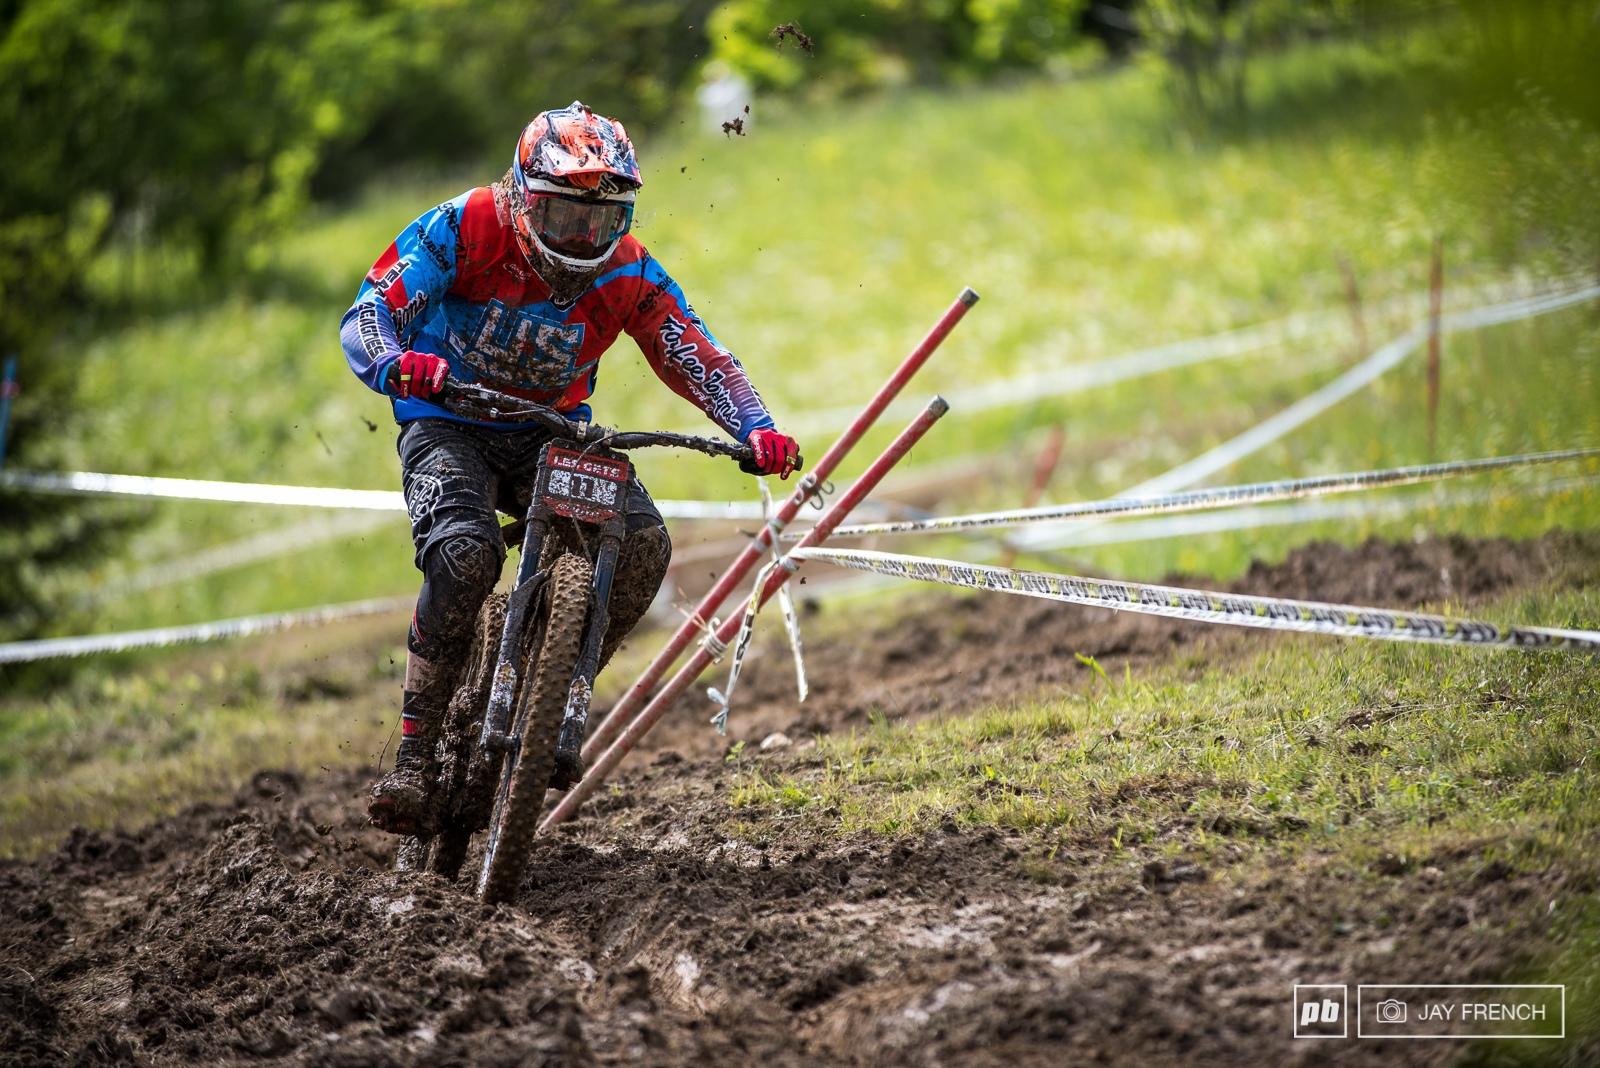 Privateer life going well for Melvin with a super strong 5th place